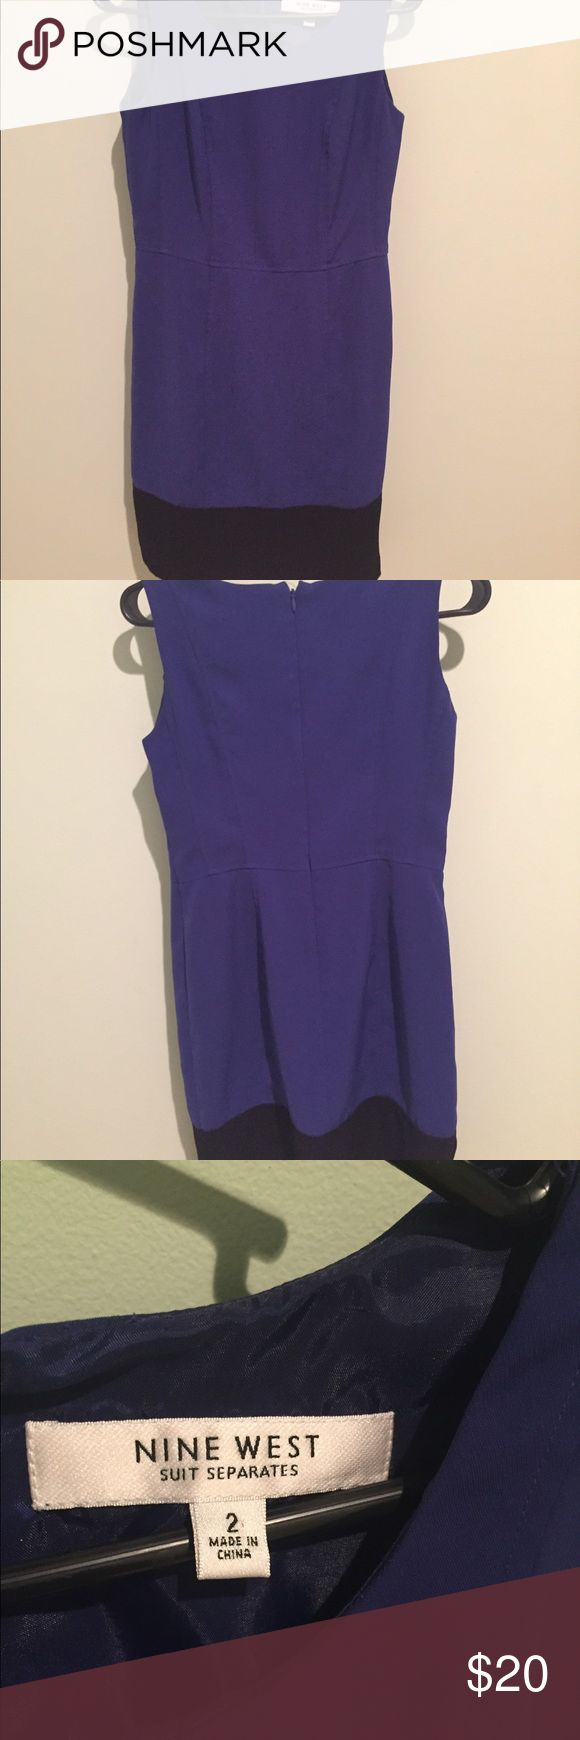 Nine West Suit Separates Dress Size 2, seems to run slightly big. Good condition, no stains. Nine West Dresses Strapless